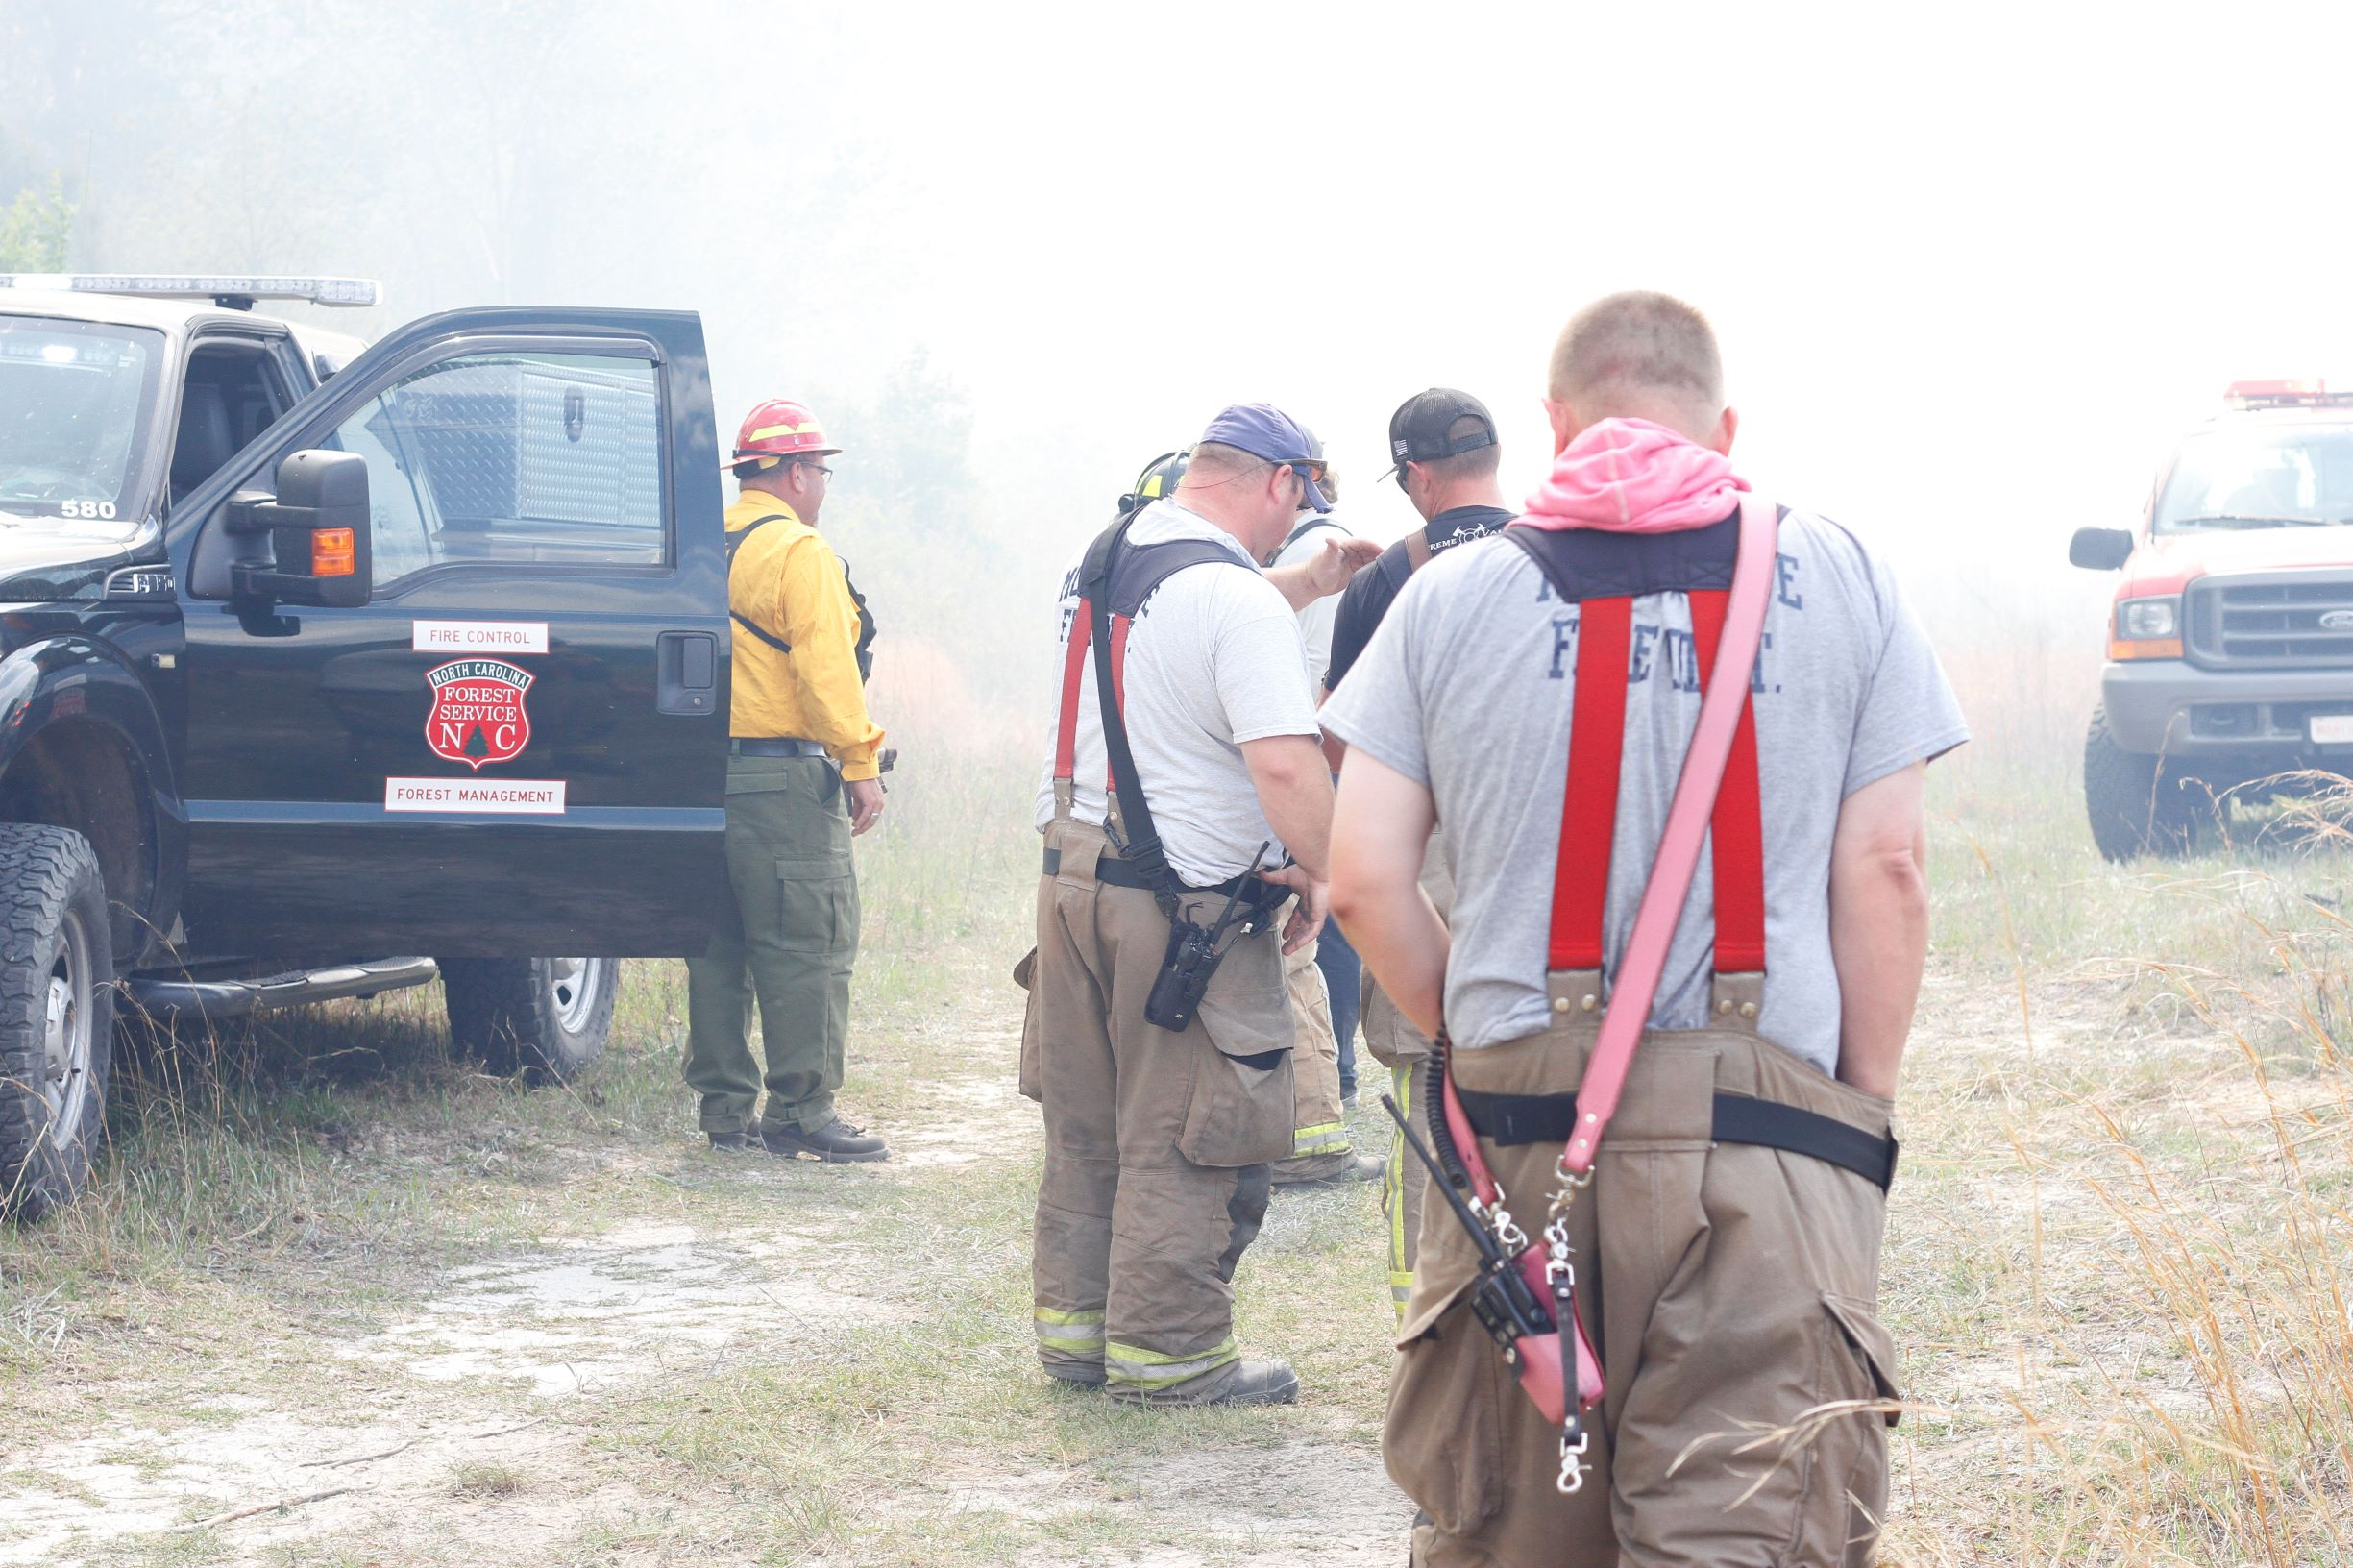 Firefighters Contain Blaze That Shut Down Highway (PHOTO GALLERY)